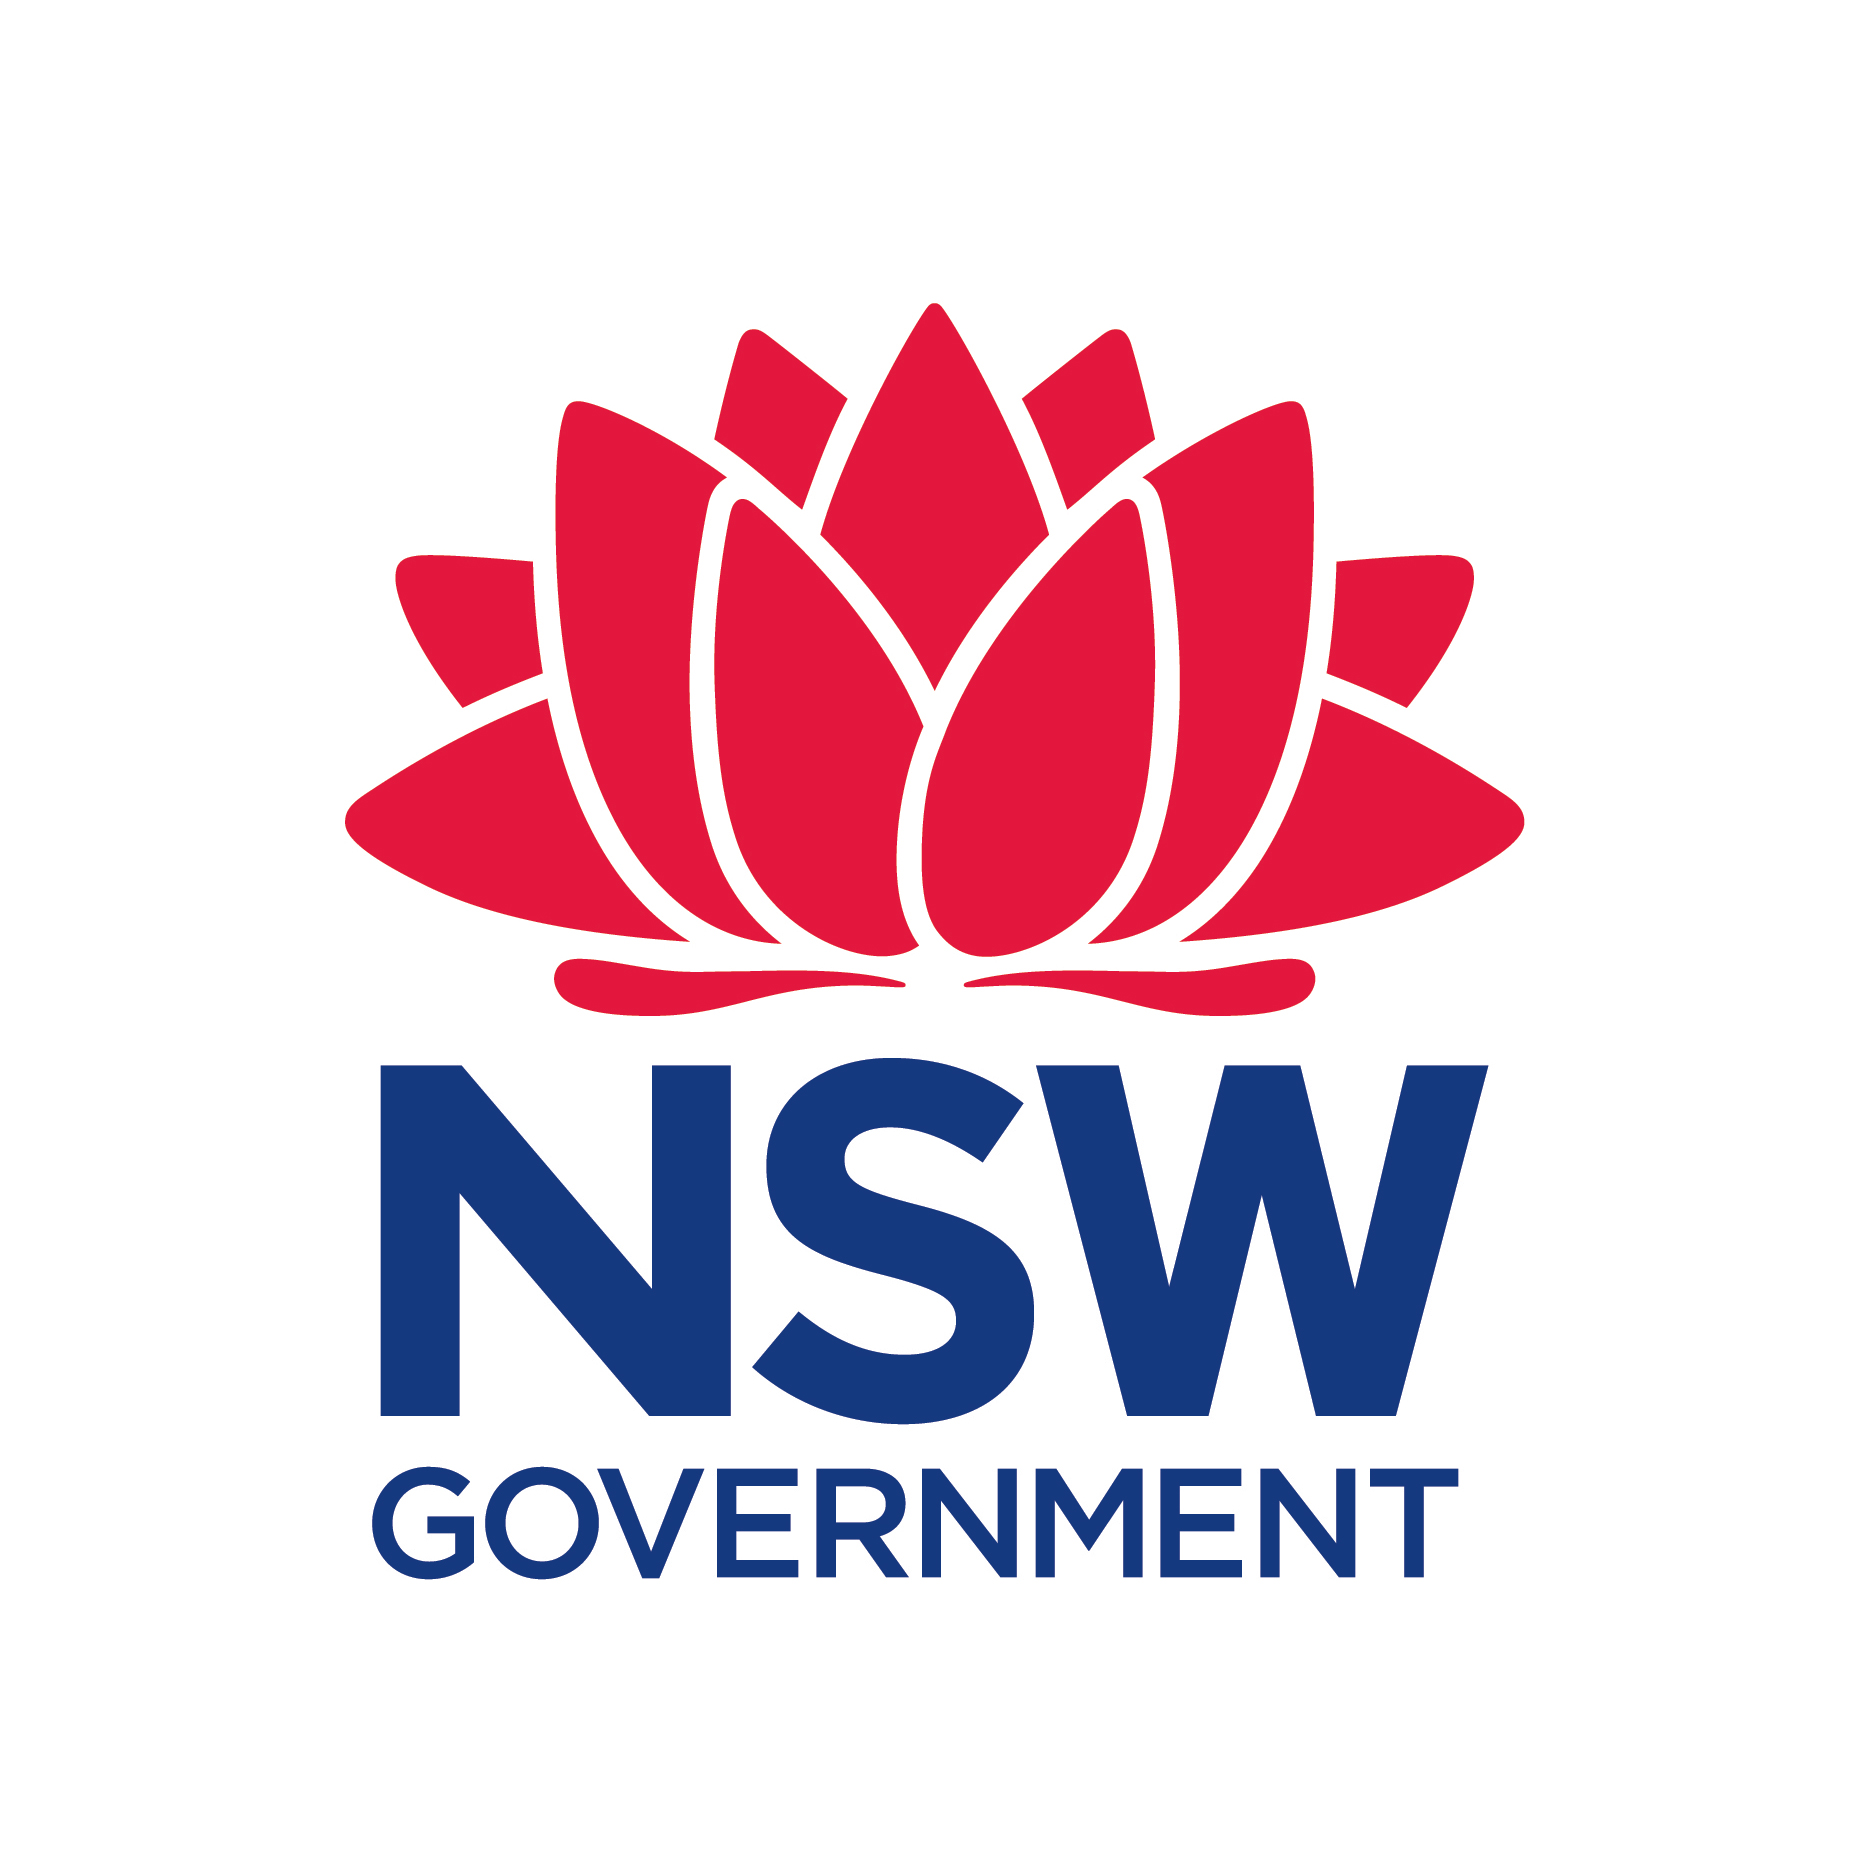 NSW Government Sponsor Logo